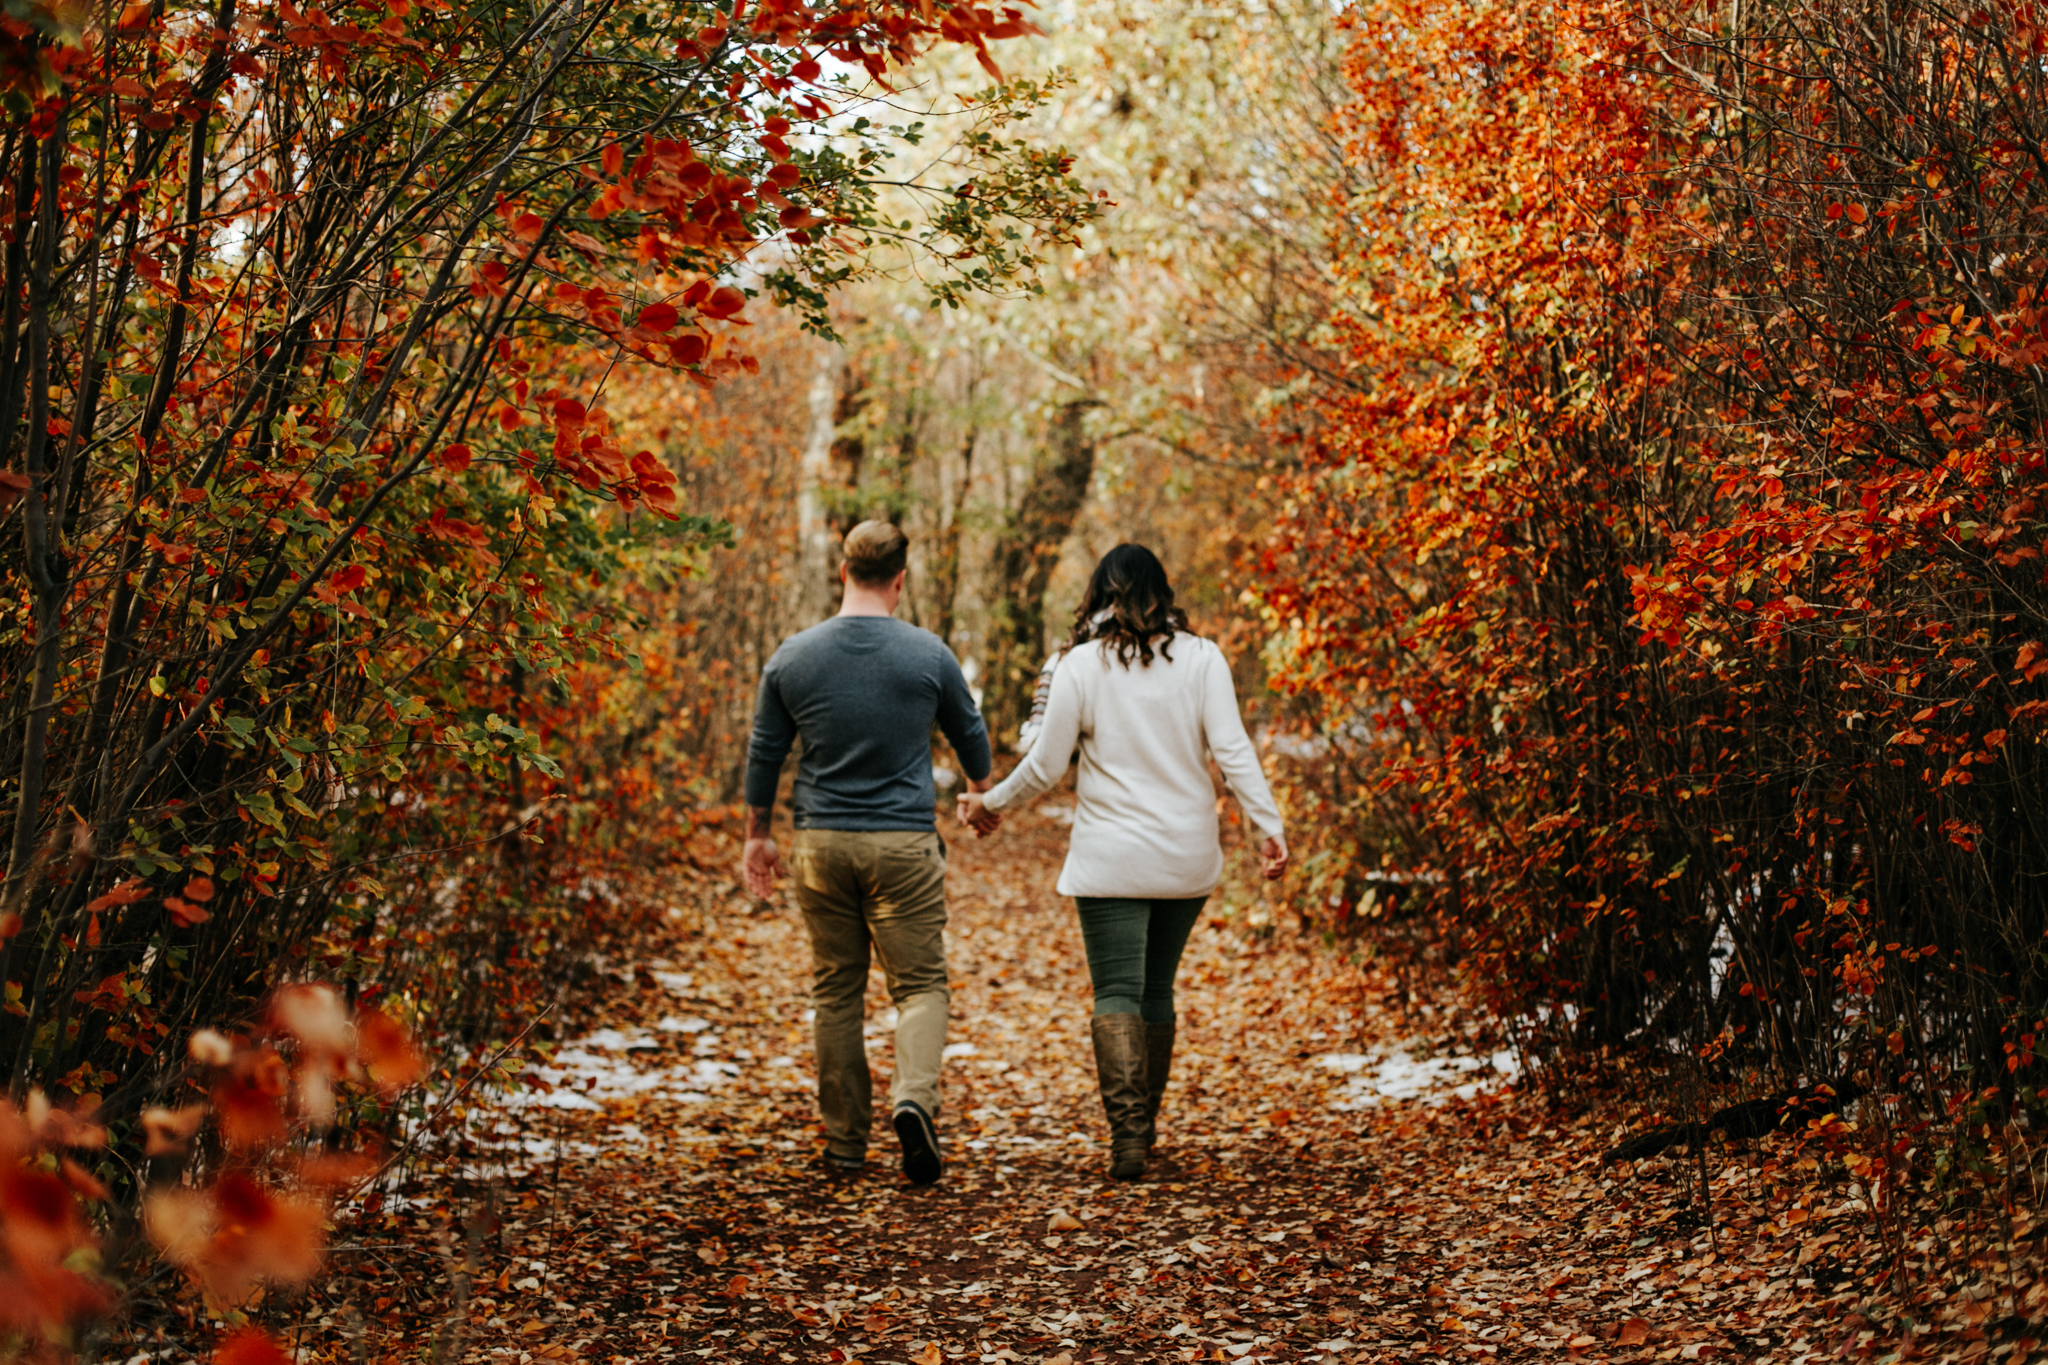 lethbridge-photographer-love-and-be-loved-photography-christy-bryan-fall-autumn-engagement-photo-image-picture-21.jpg